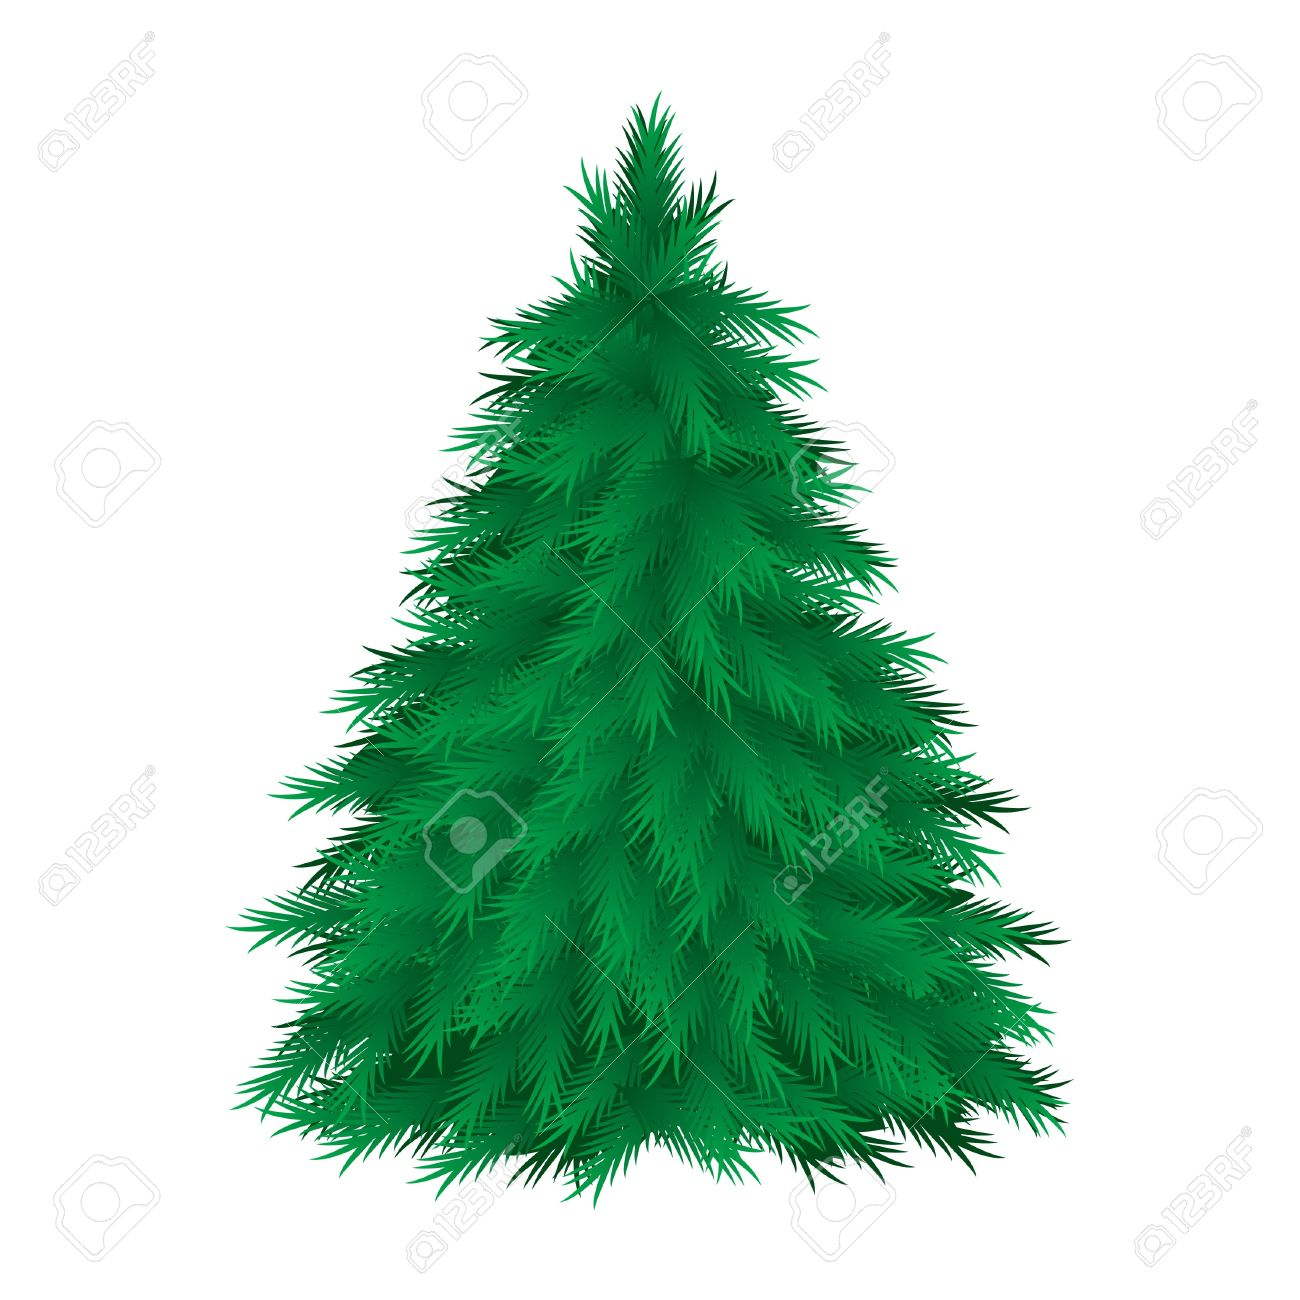 Coniferous Tree Isolated. Vector Illustration On White Background.